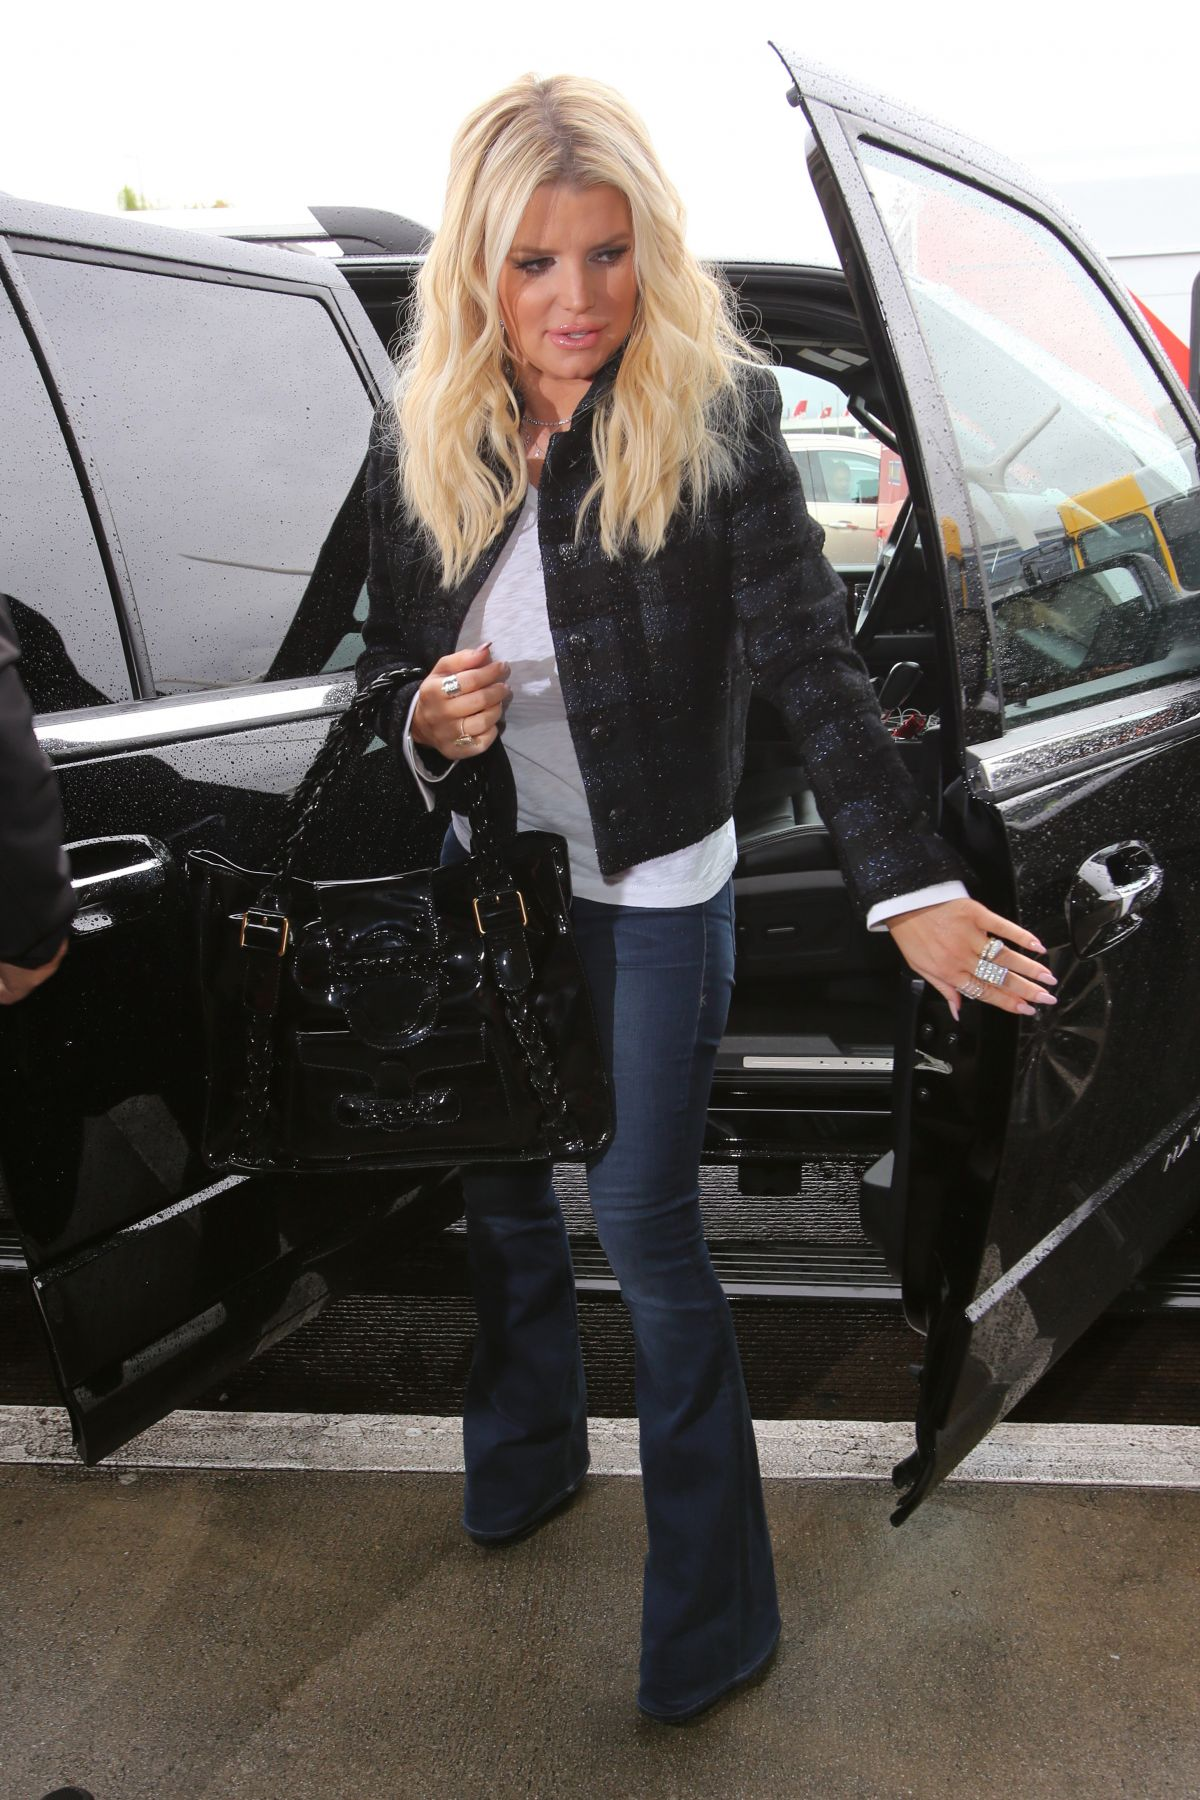 JESSICA SIMPSON at LAX Airport in Los Angeles 01/12/2017